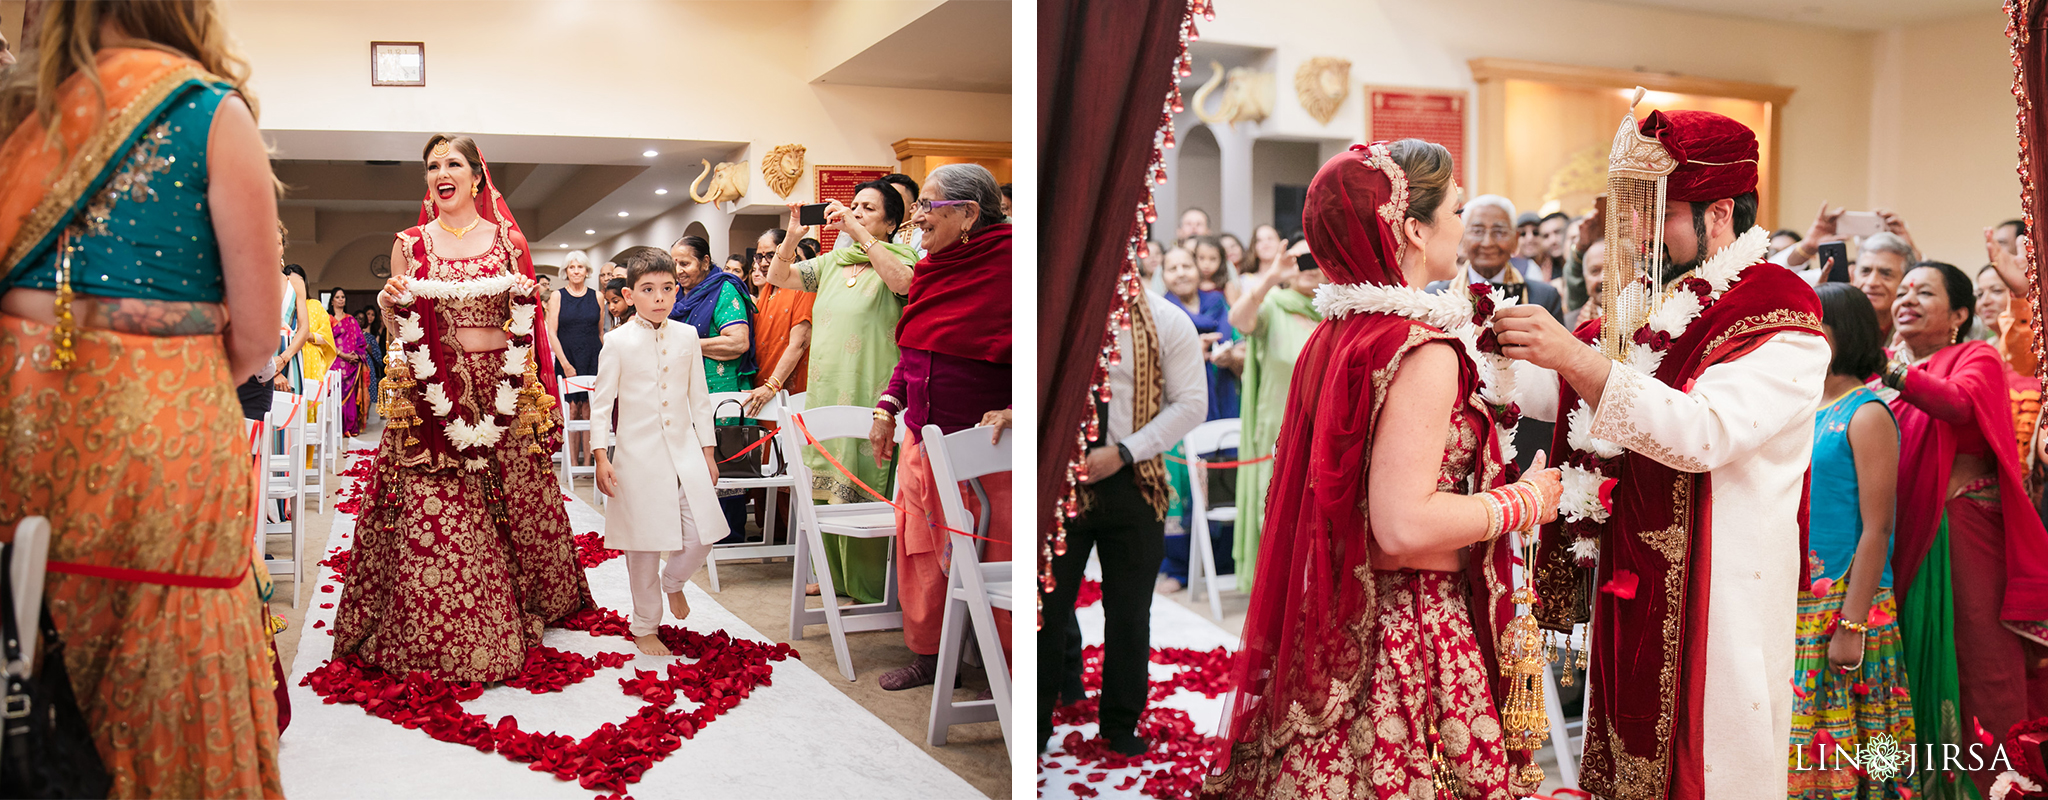 18 Valley Hindu Temple Northridge Indian Wedding Photography